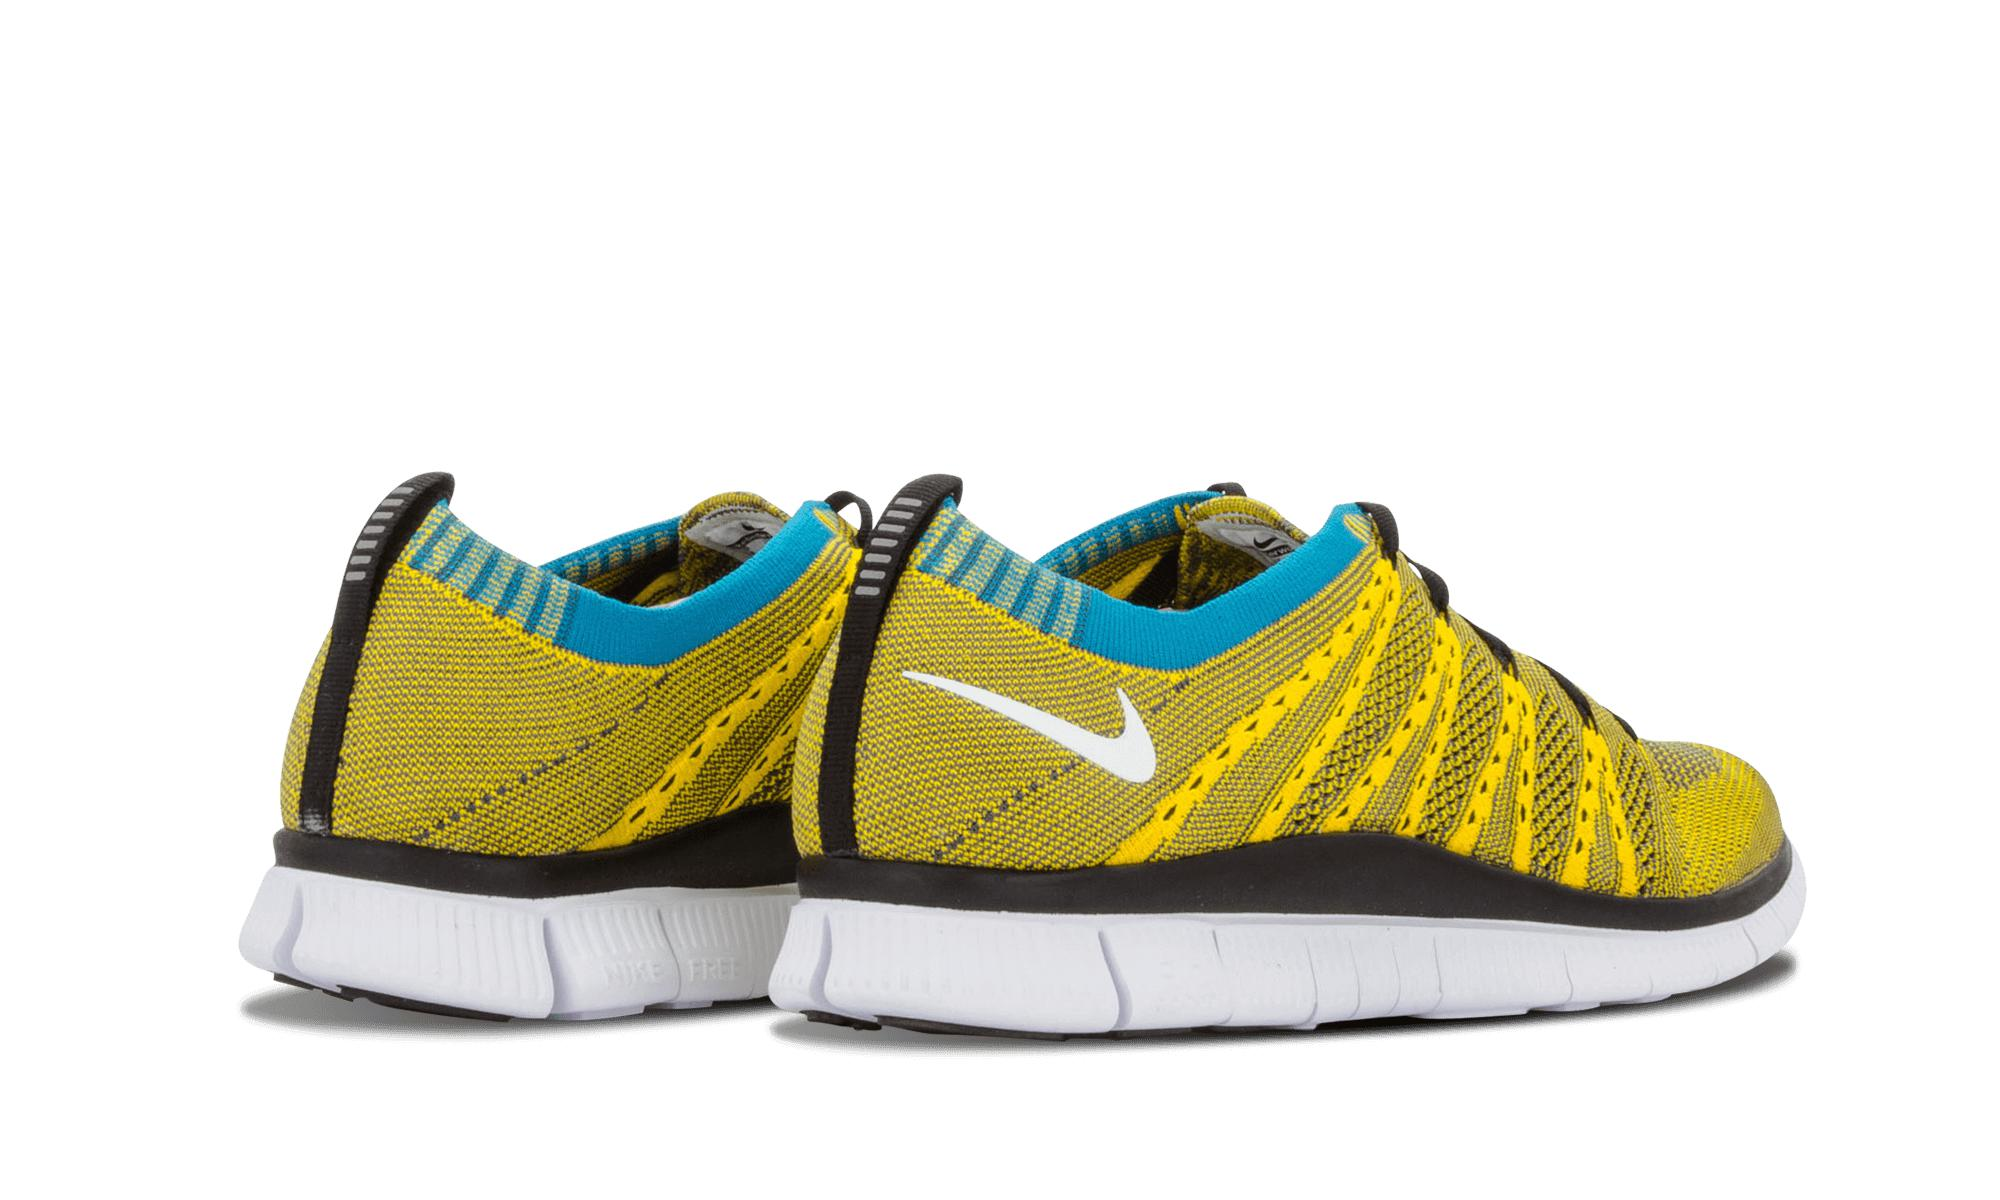 4330b2b3d0965 Nike - Yellow Free Flyknit Htm Sp for Men - Lyst. View fullscreen